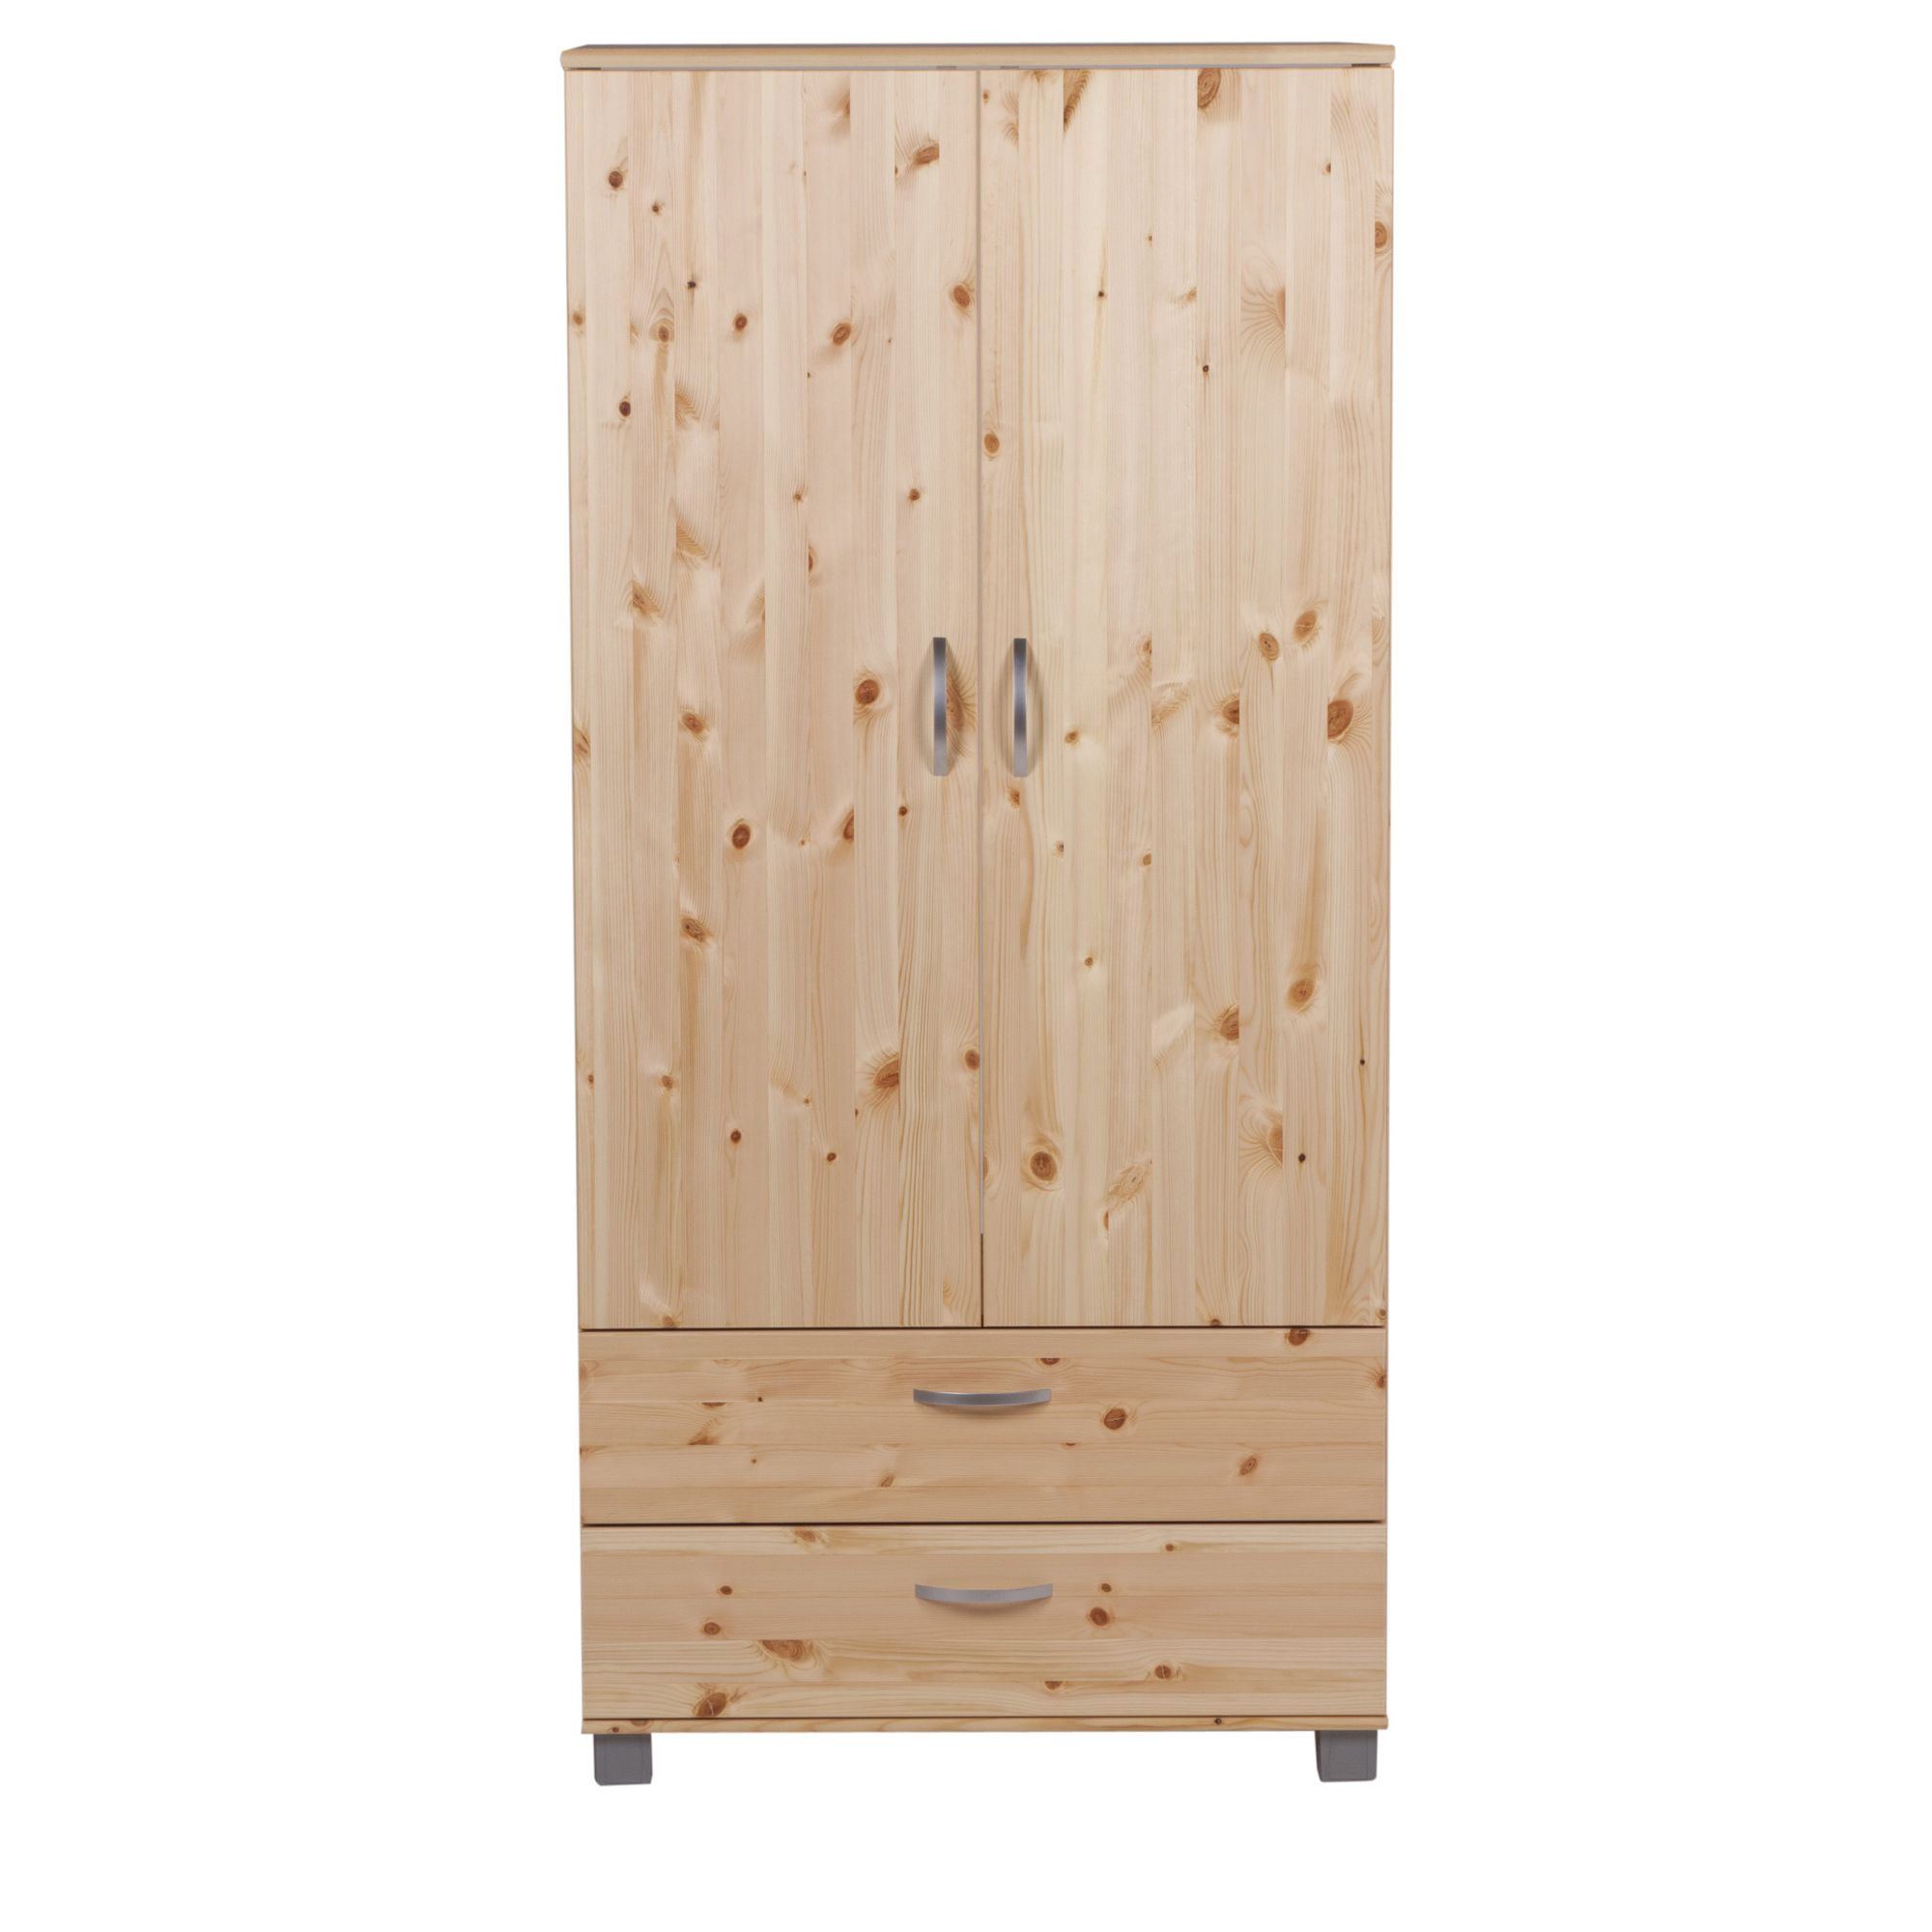 Thuka Trendy Two Door Two Drawer Wardrobe - Black - Natural Lacquer at Tesco Direct